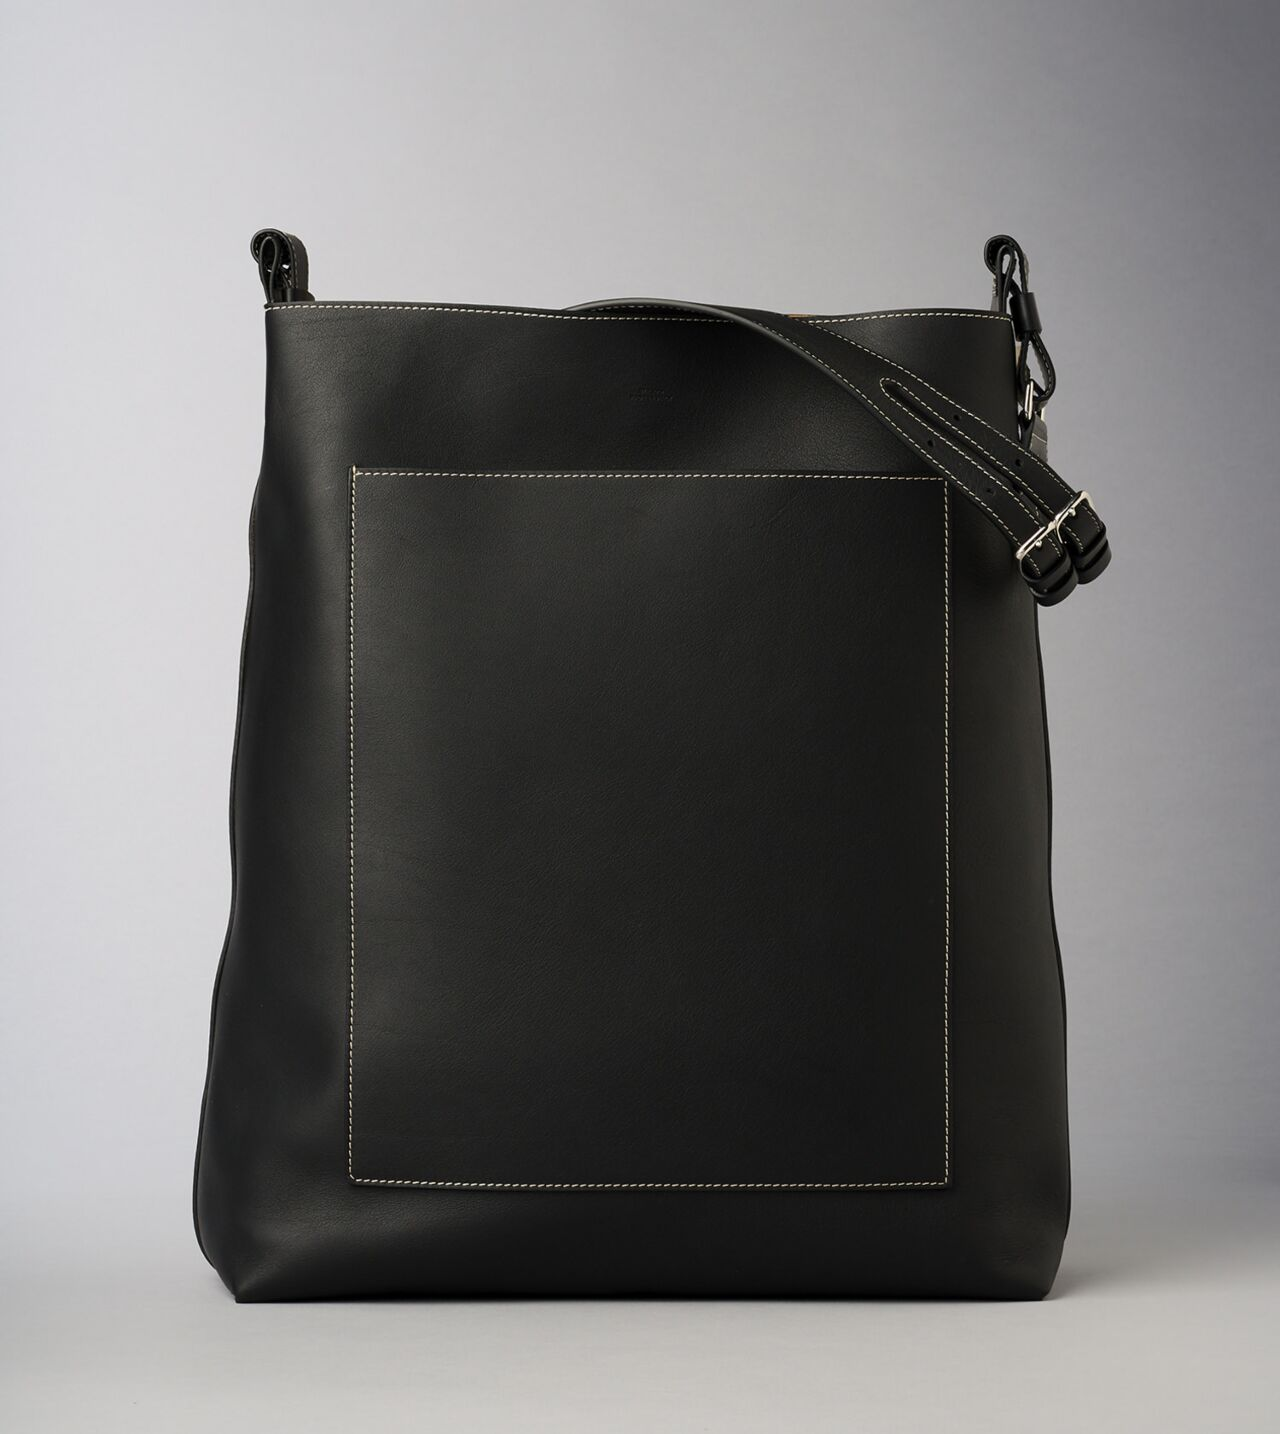 Picture of Byredo Eazy bag in Black leather and silver hardware